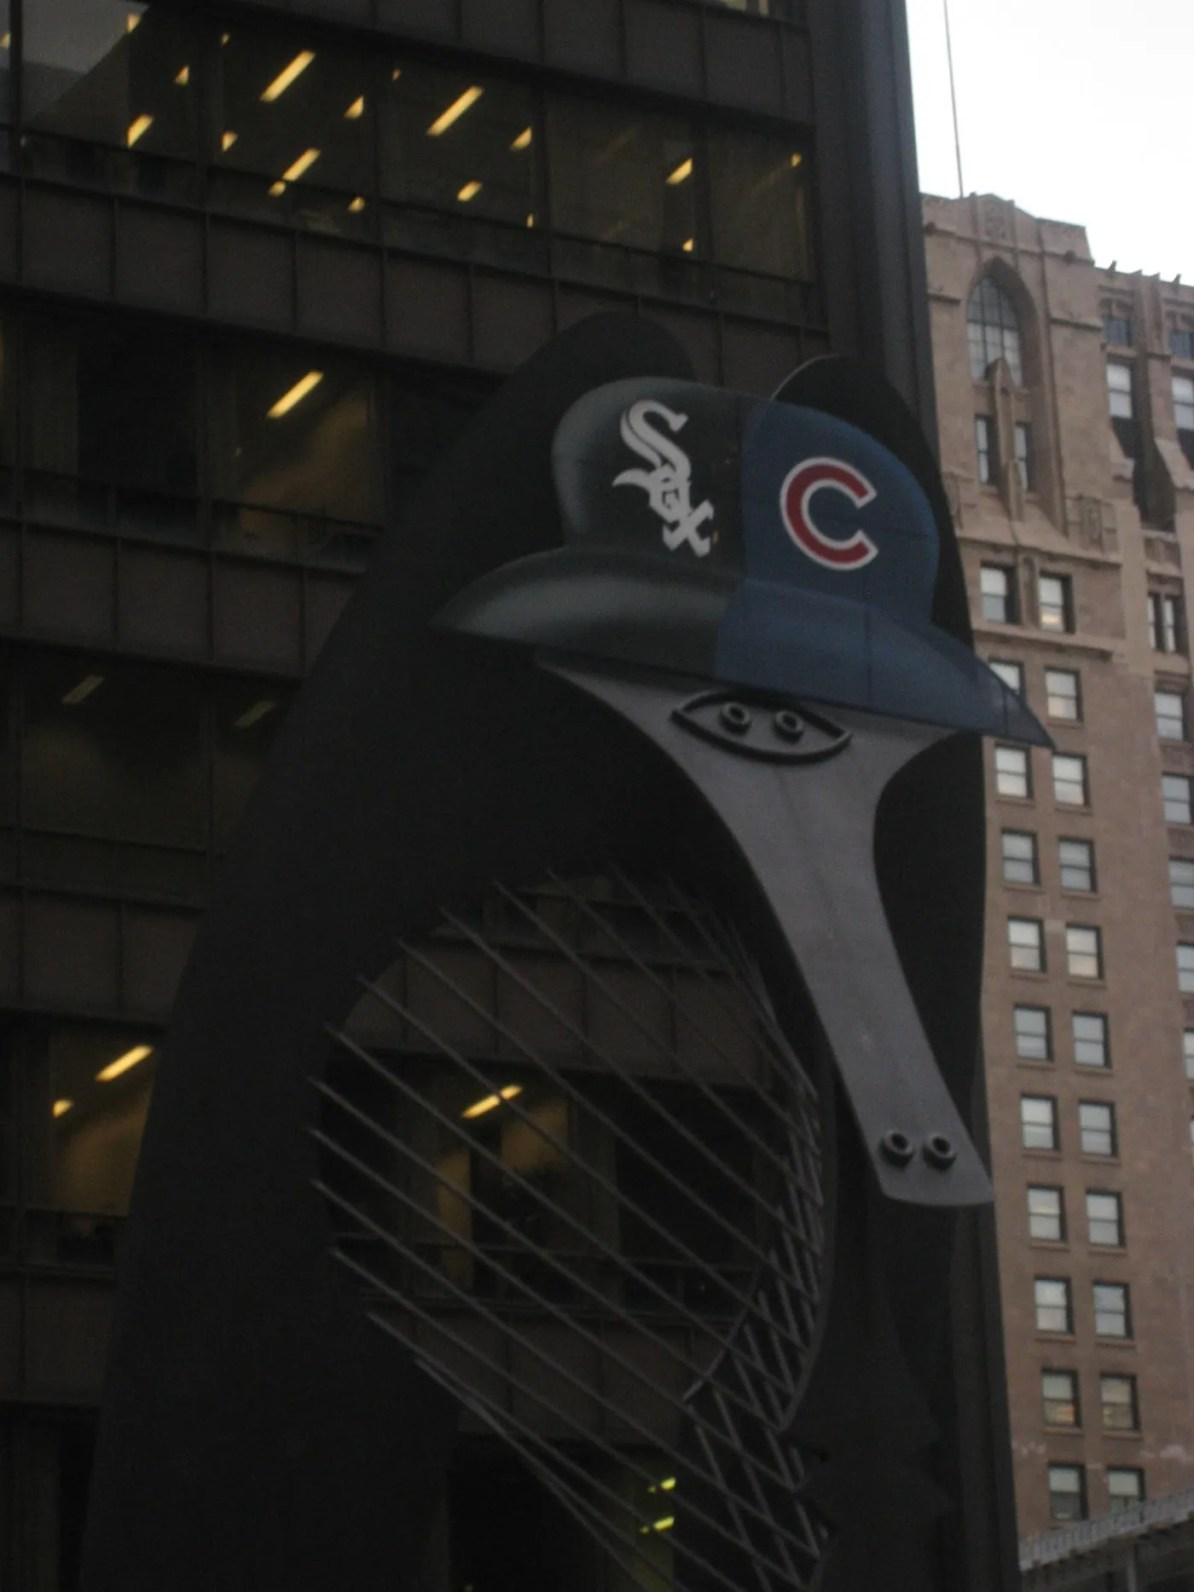 The Chicago Picasso outside of the Daley Center wearing a Cubs/White Sox hat.